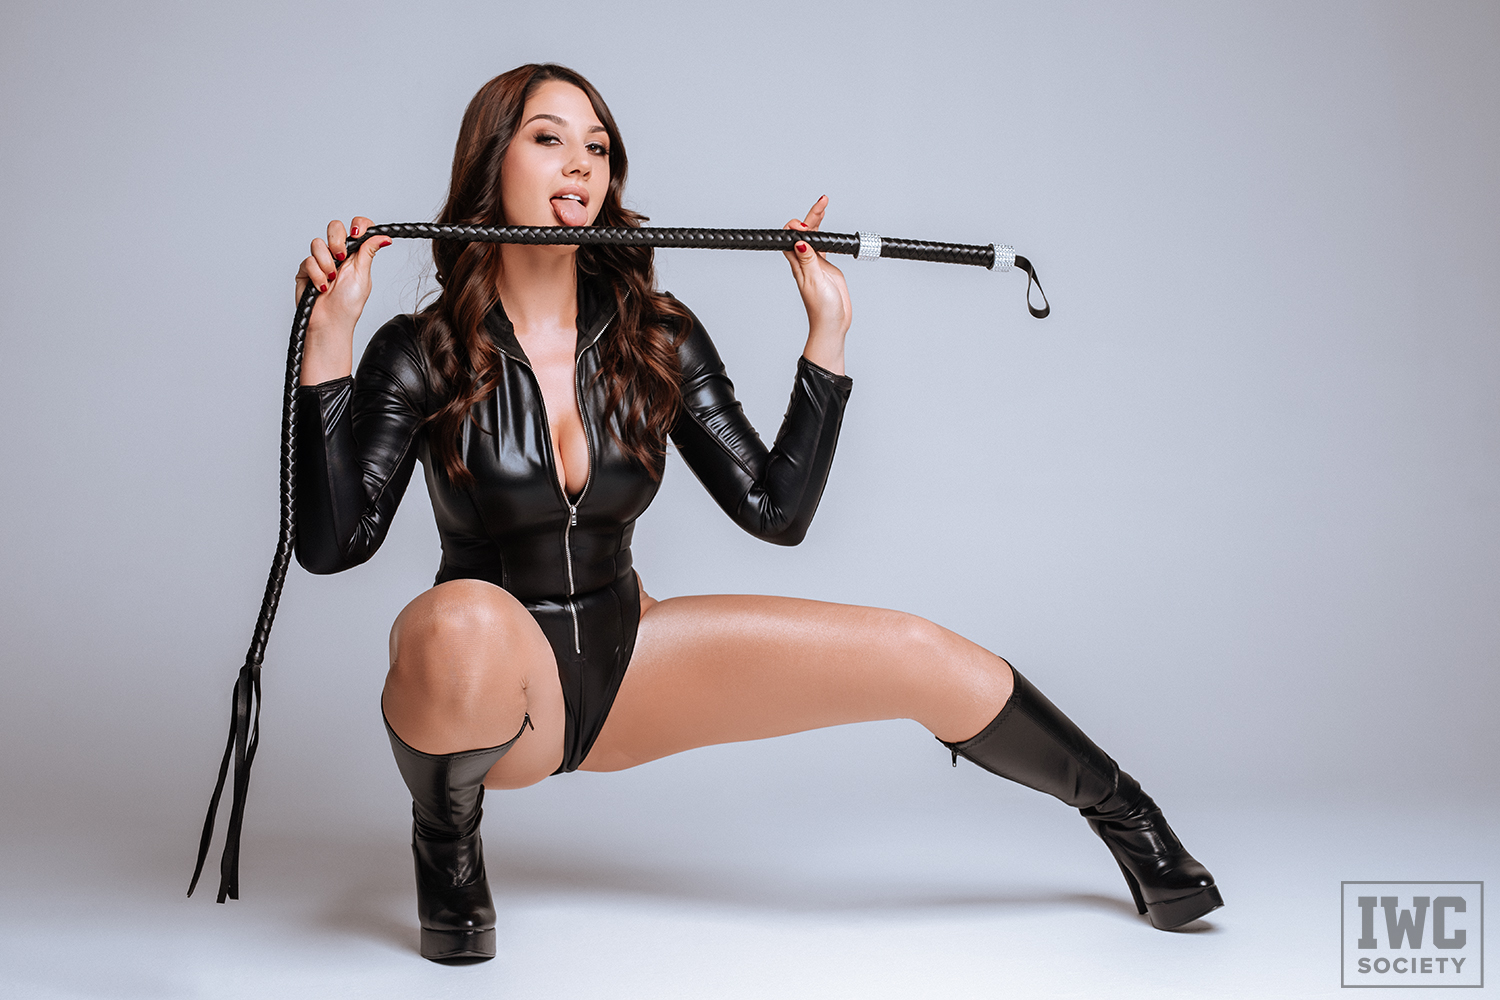 financial domme Ceara Lynch in black boots with a whip